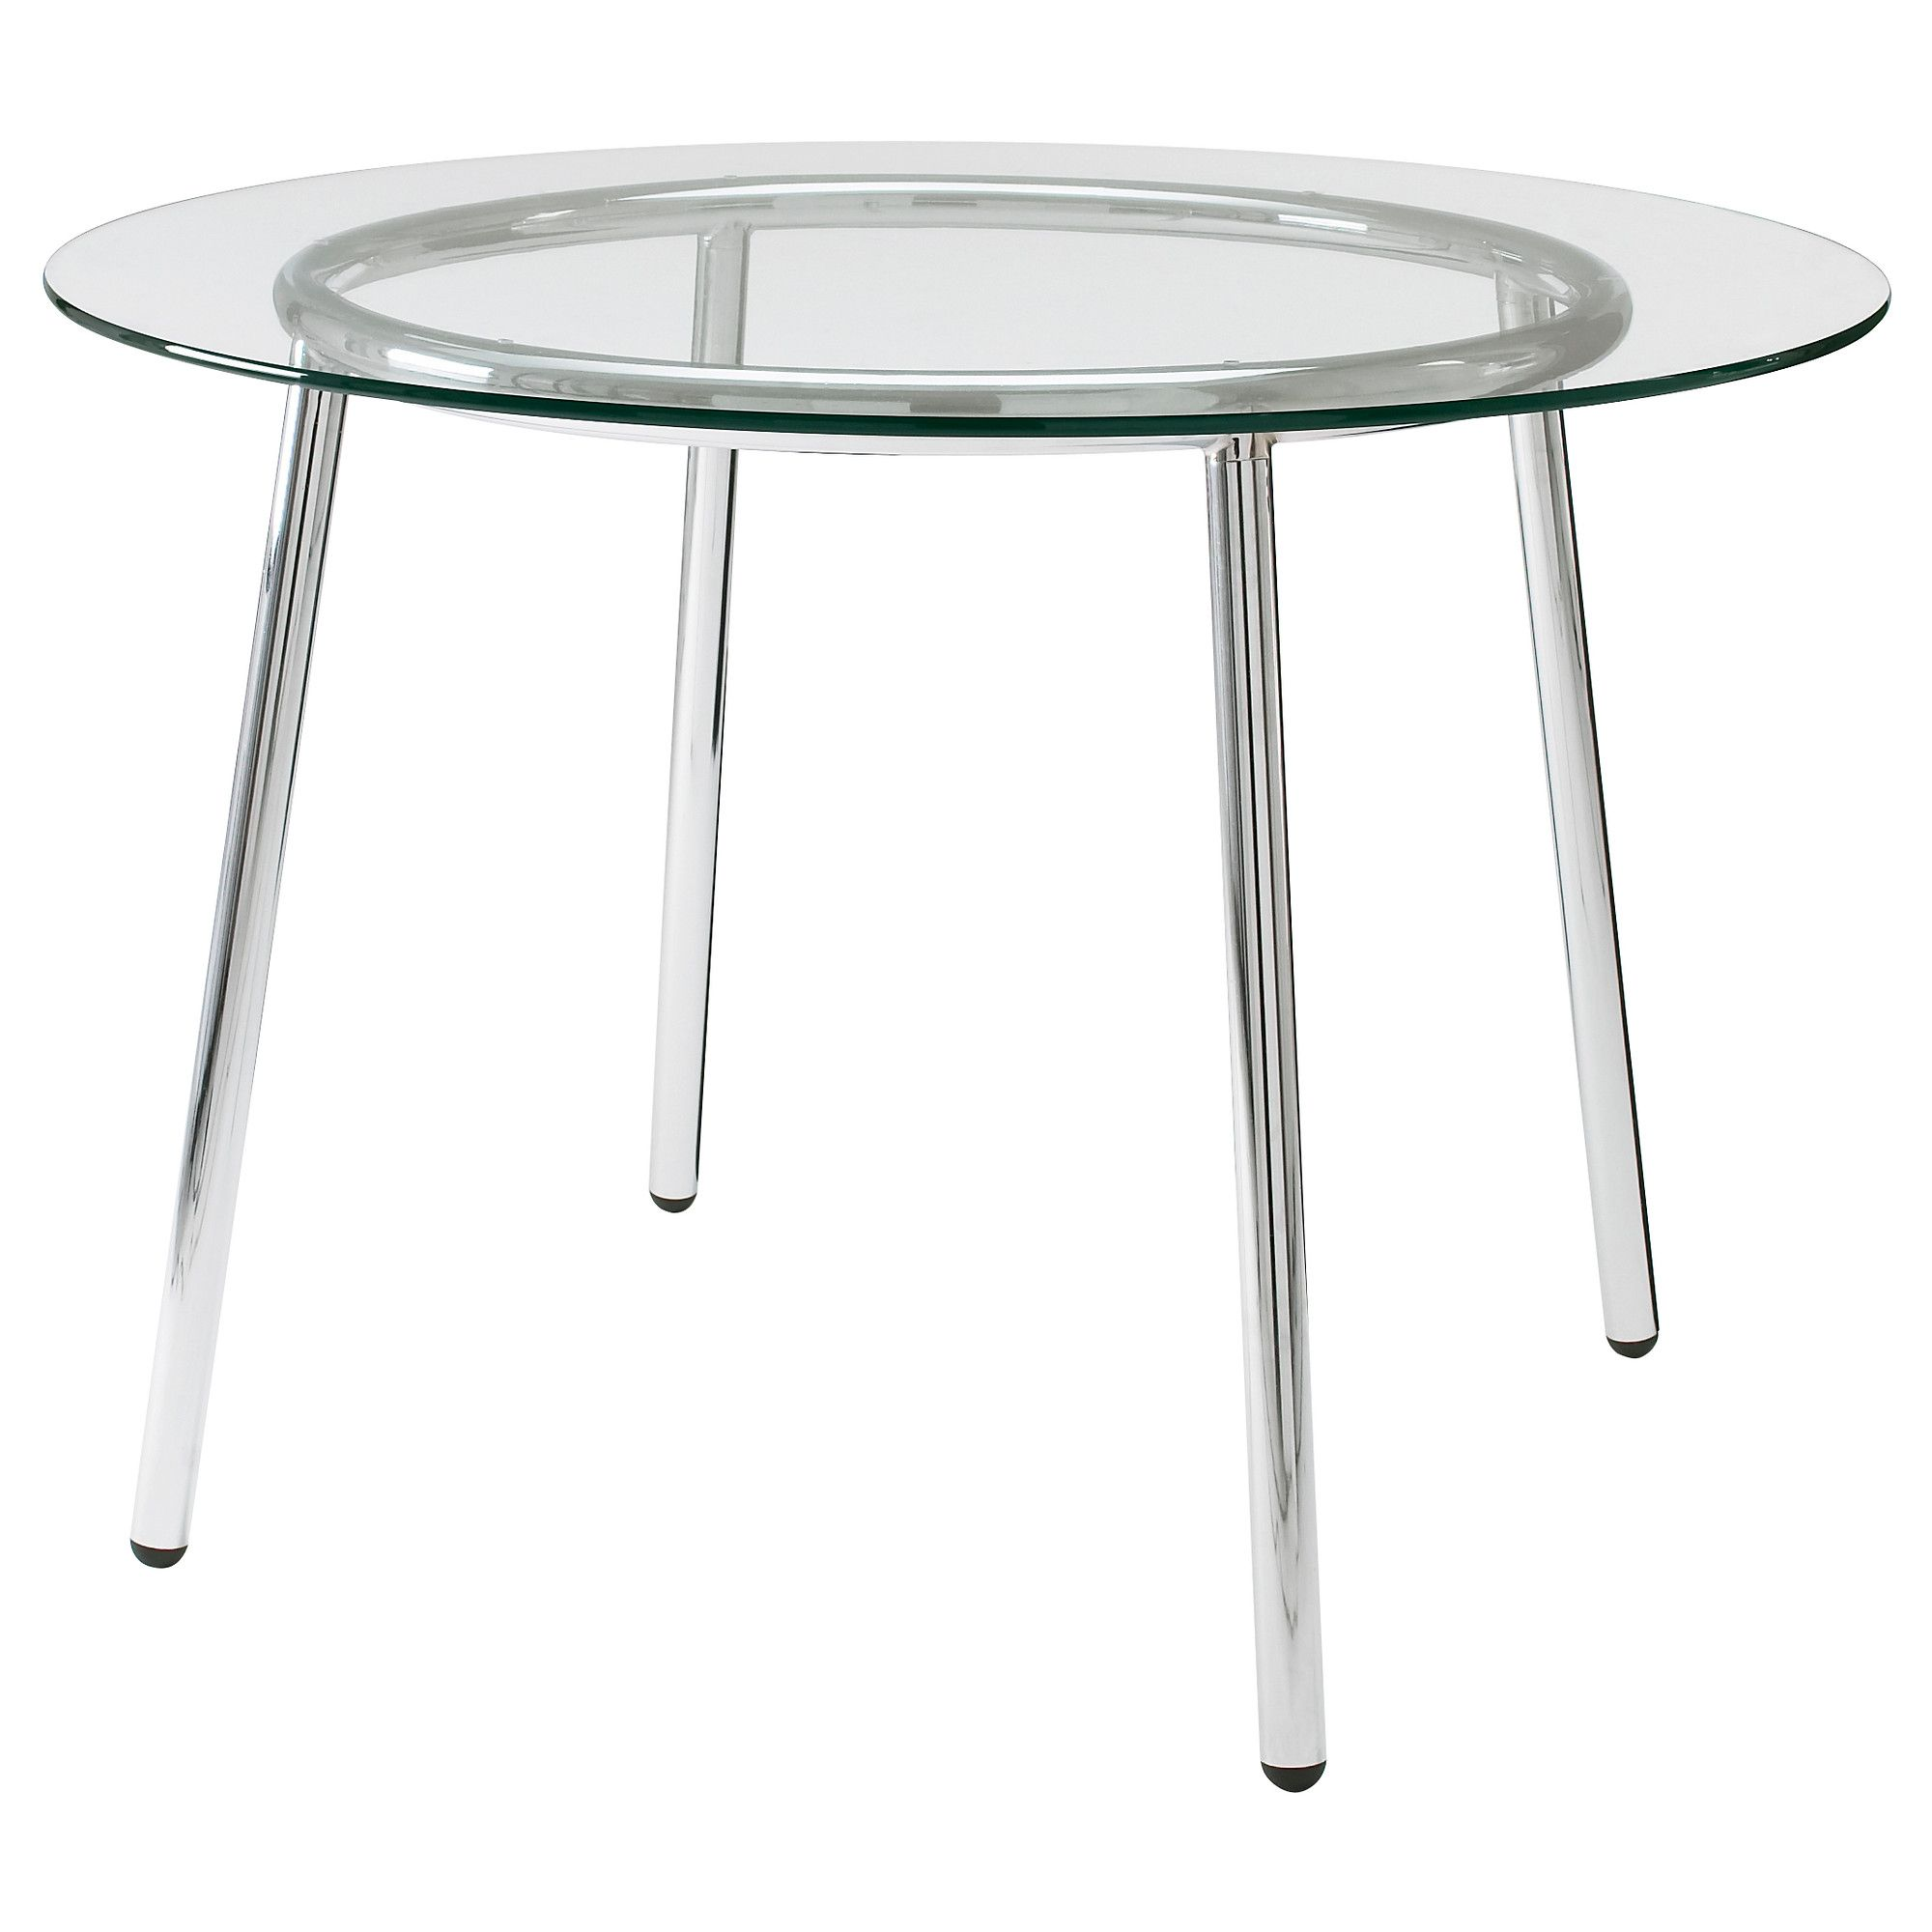 SALMI Dining Table Glass Chrome Plated 12900 Article Number 70102298